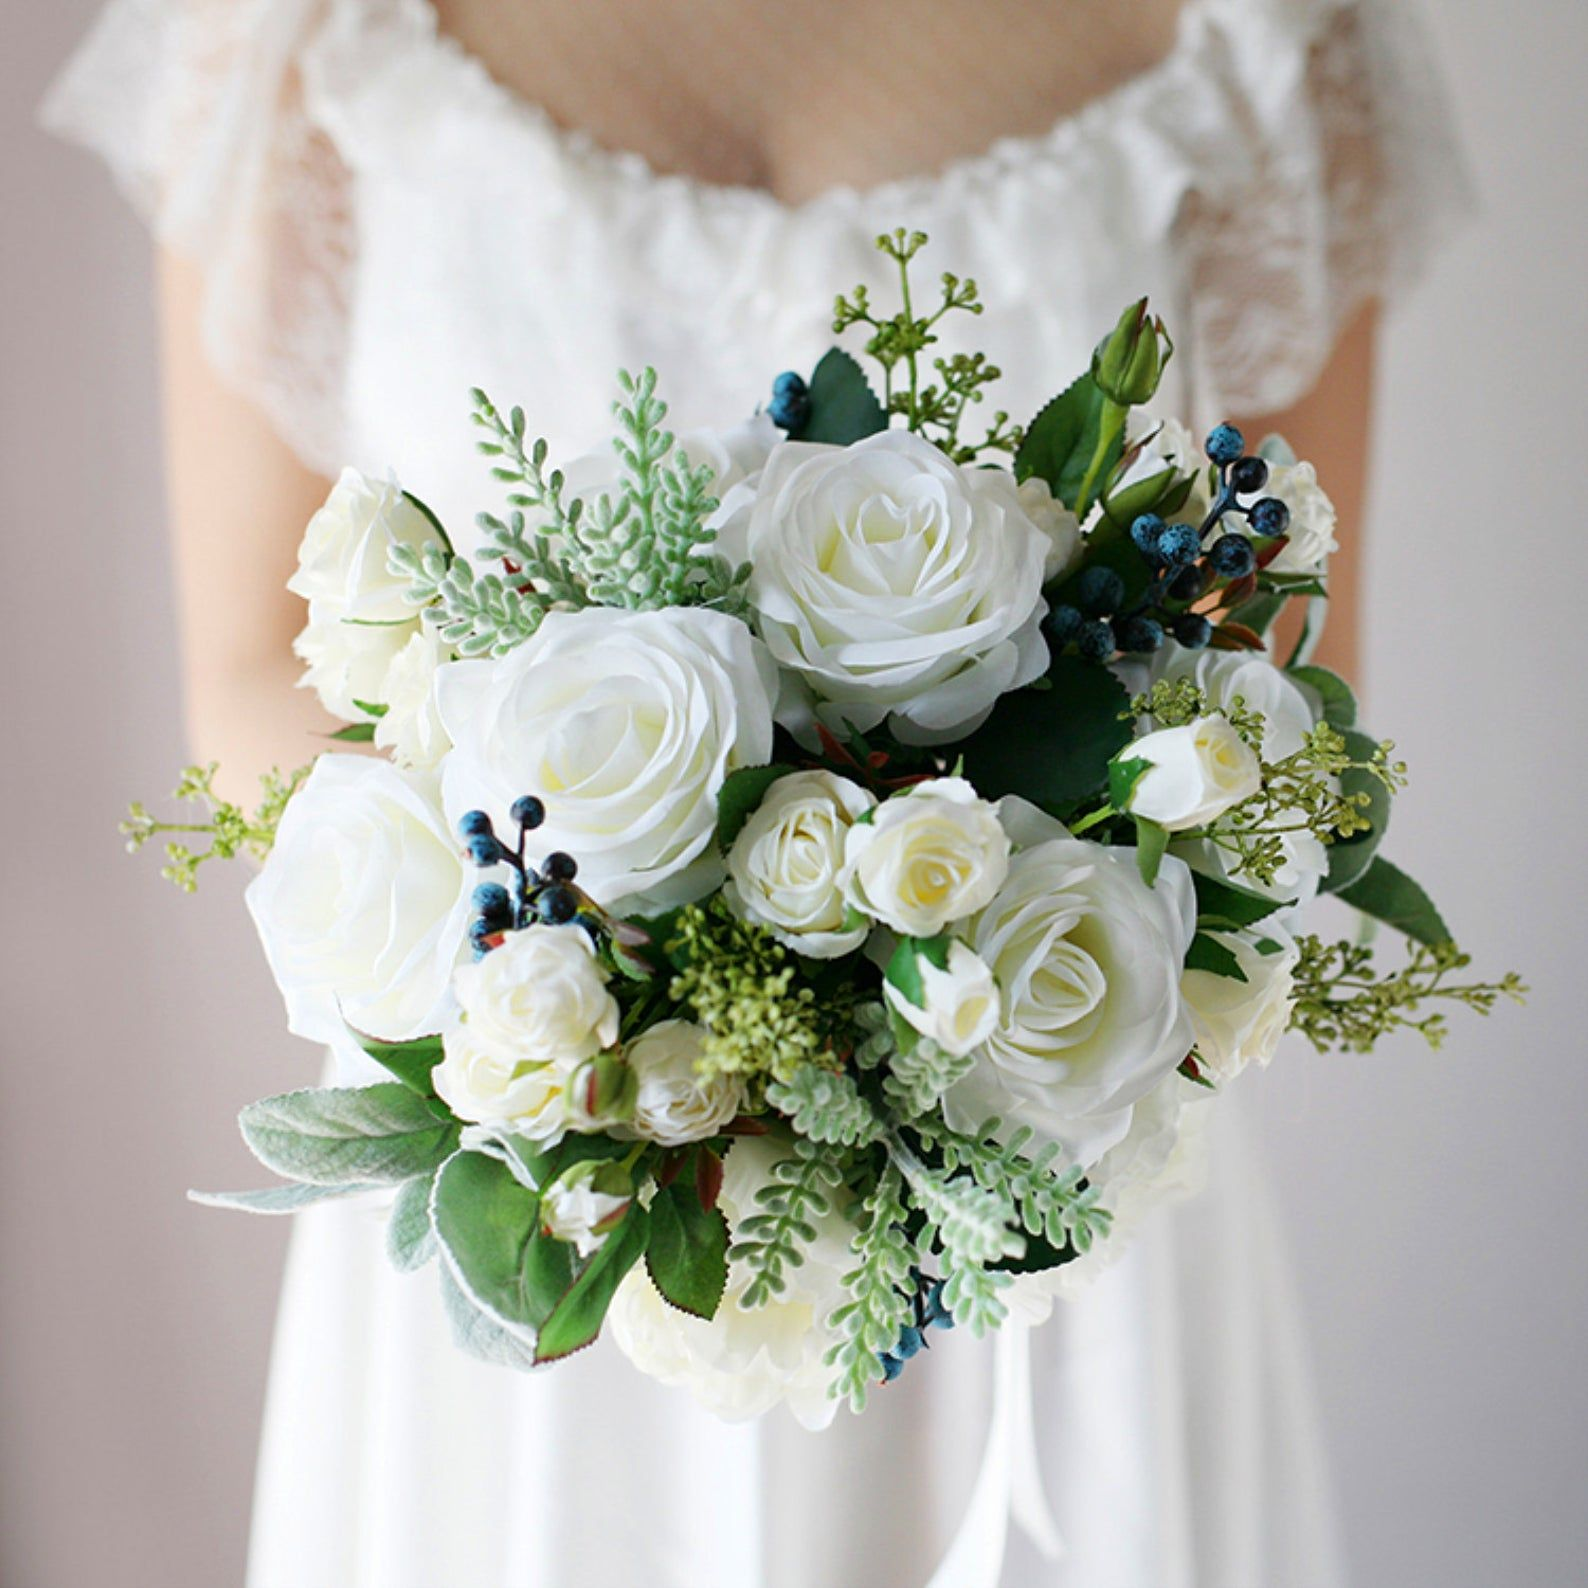 Bridal BouquetWhite Rose Greenery Classic Wedding Bouquet